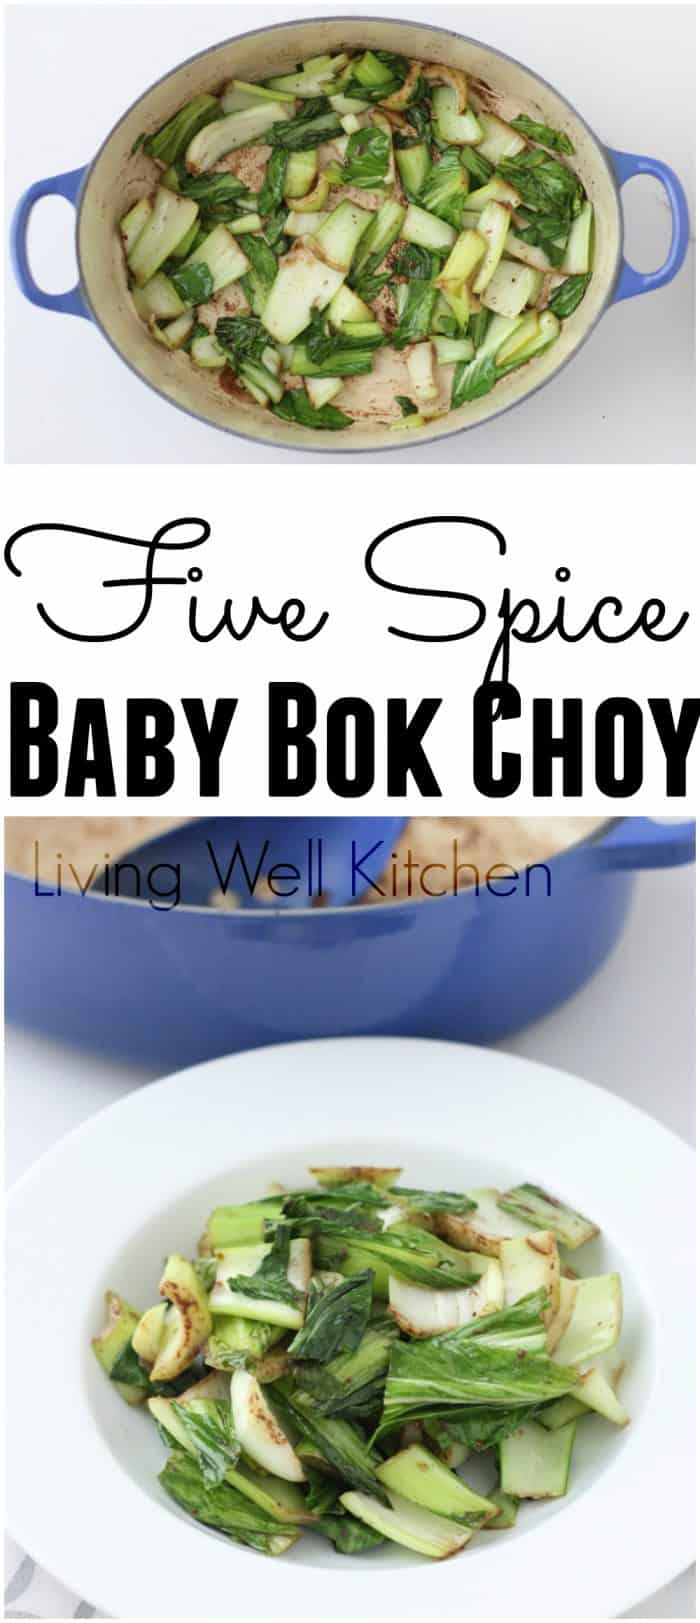 It doesn't get much better than this flavor-packed side dish ready in 10 minutes. Five Spice Baby Bok Choy is easy and a delicious way to get in this nutritious cruciferous veggies. This recipe is gluten free, dairy free, and soy free